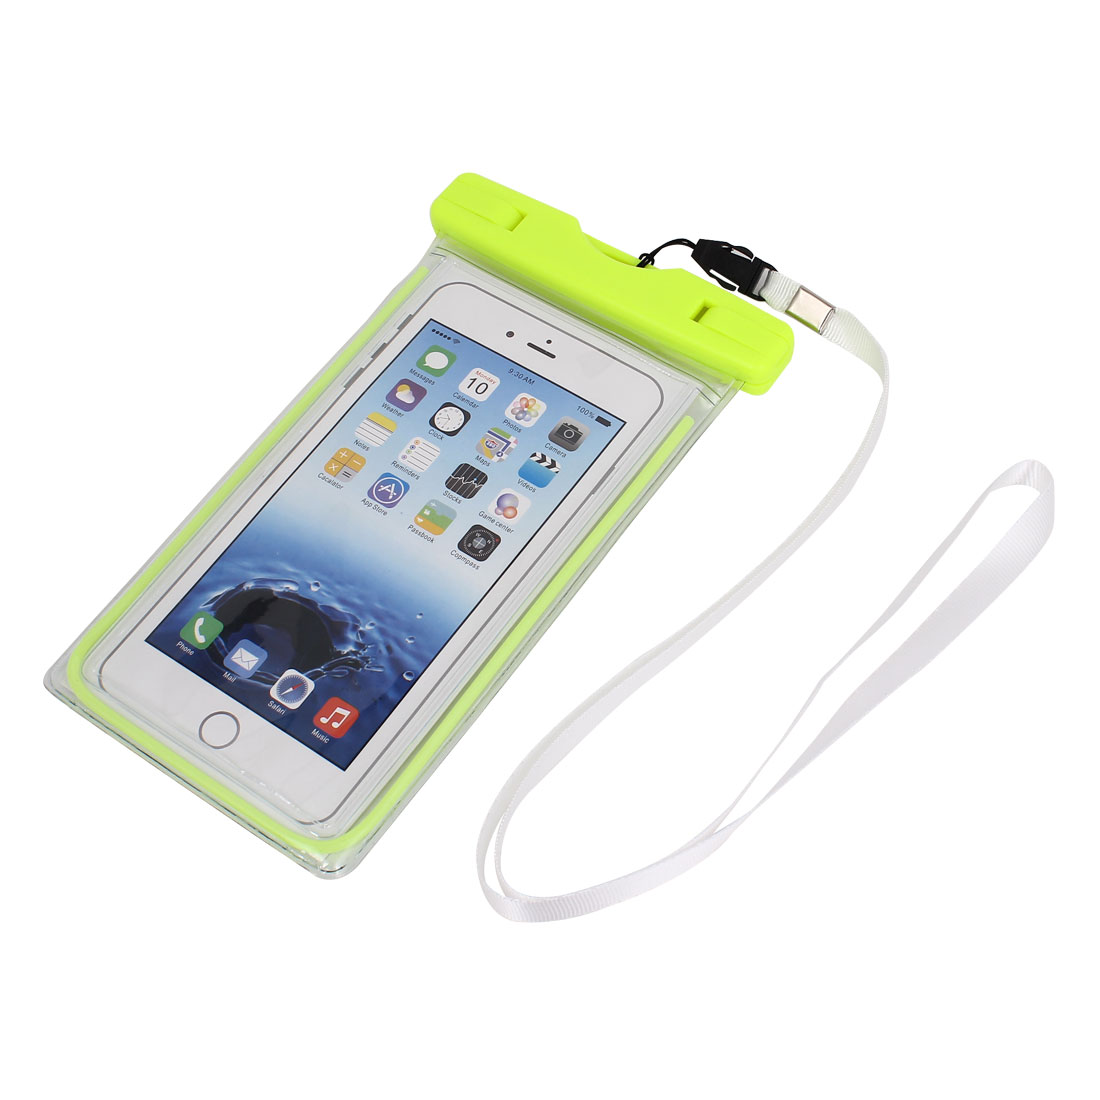 Waterproof Luminous Bag Holder Pouch Yellow for iPhone 6 Plus w Neck Strap